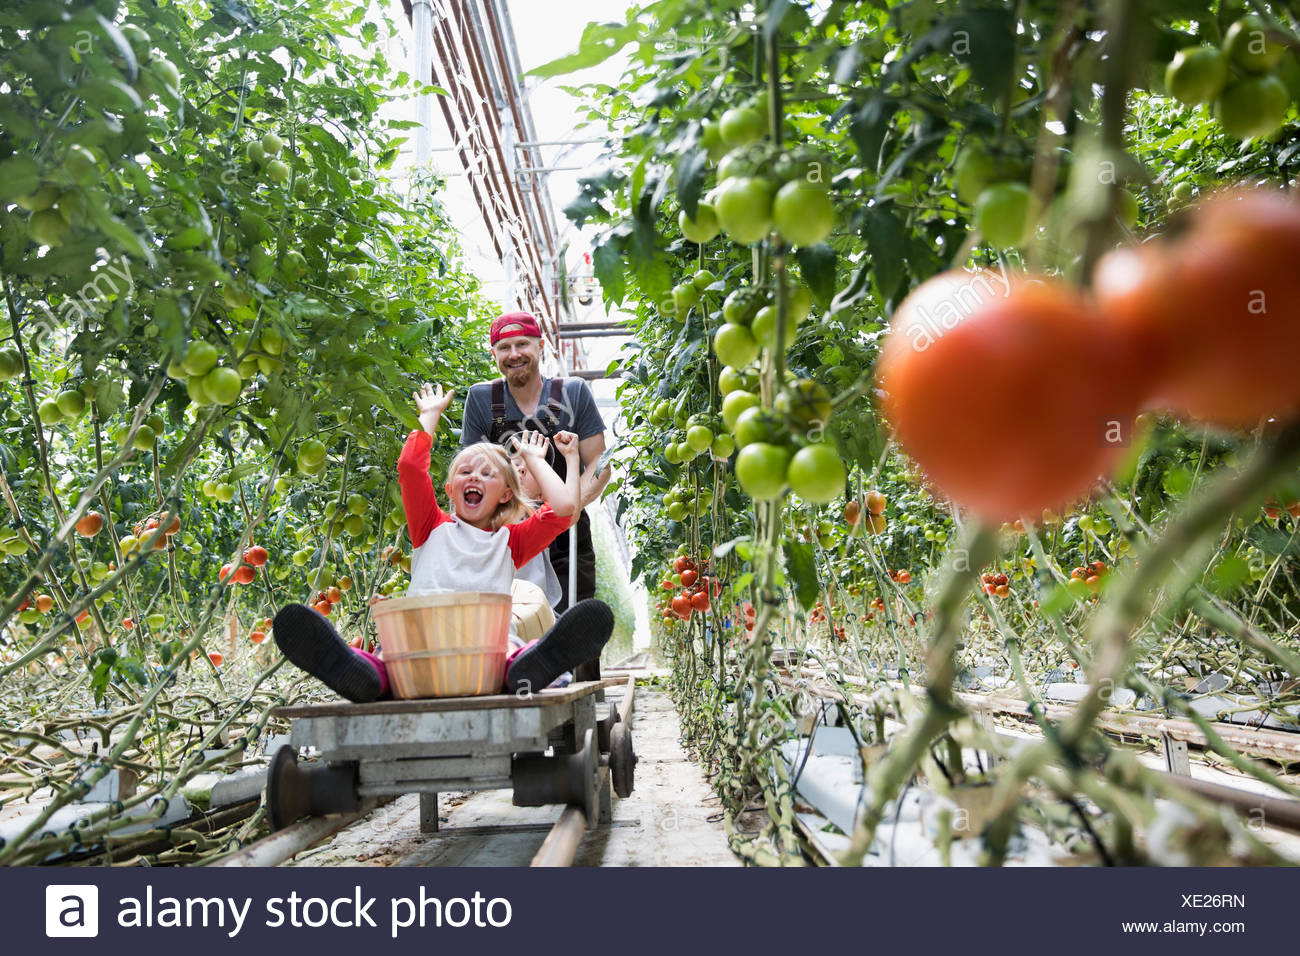 Father pushing playful children on cart between growing tomato plants in greenhouse - Stock Image